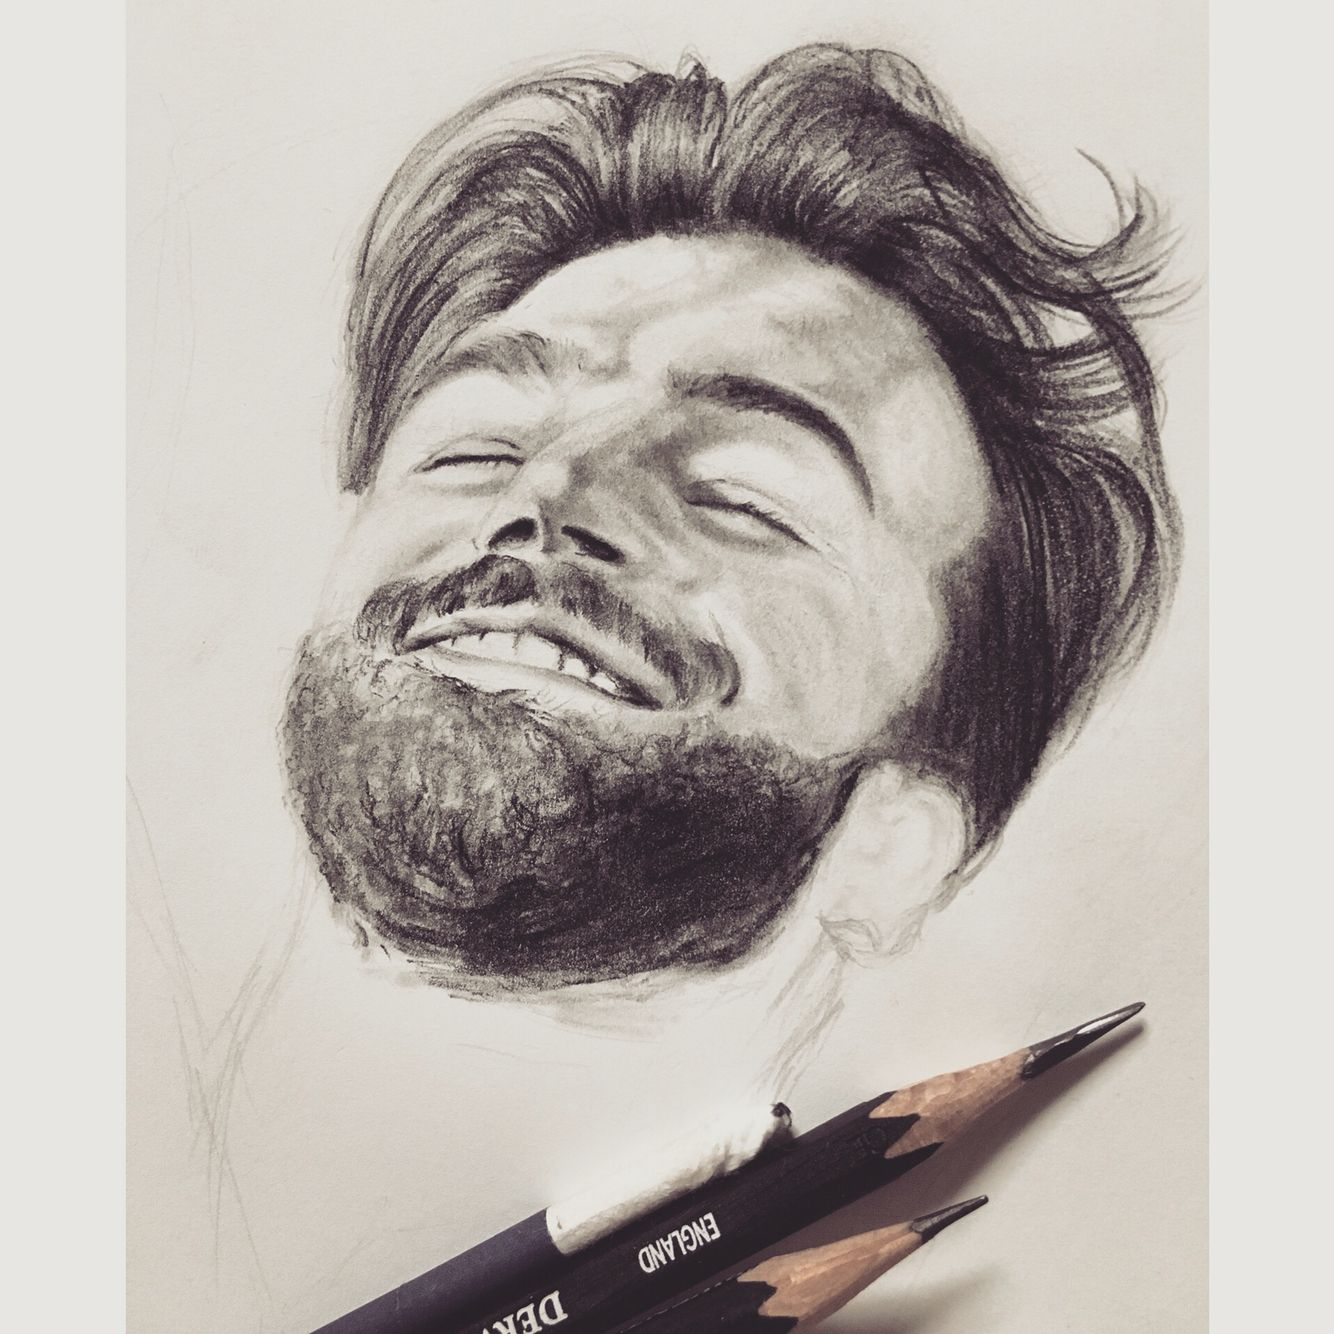 Man smile smile drawing smiling man sketching sketch sketches